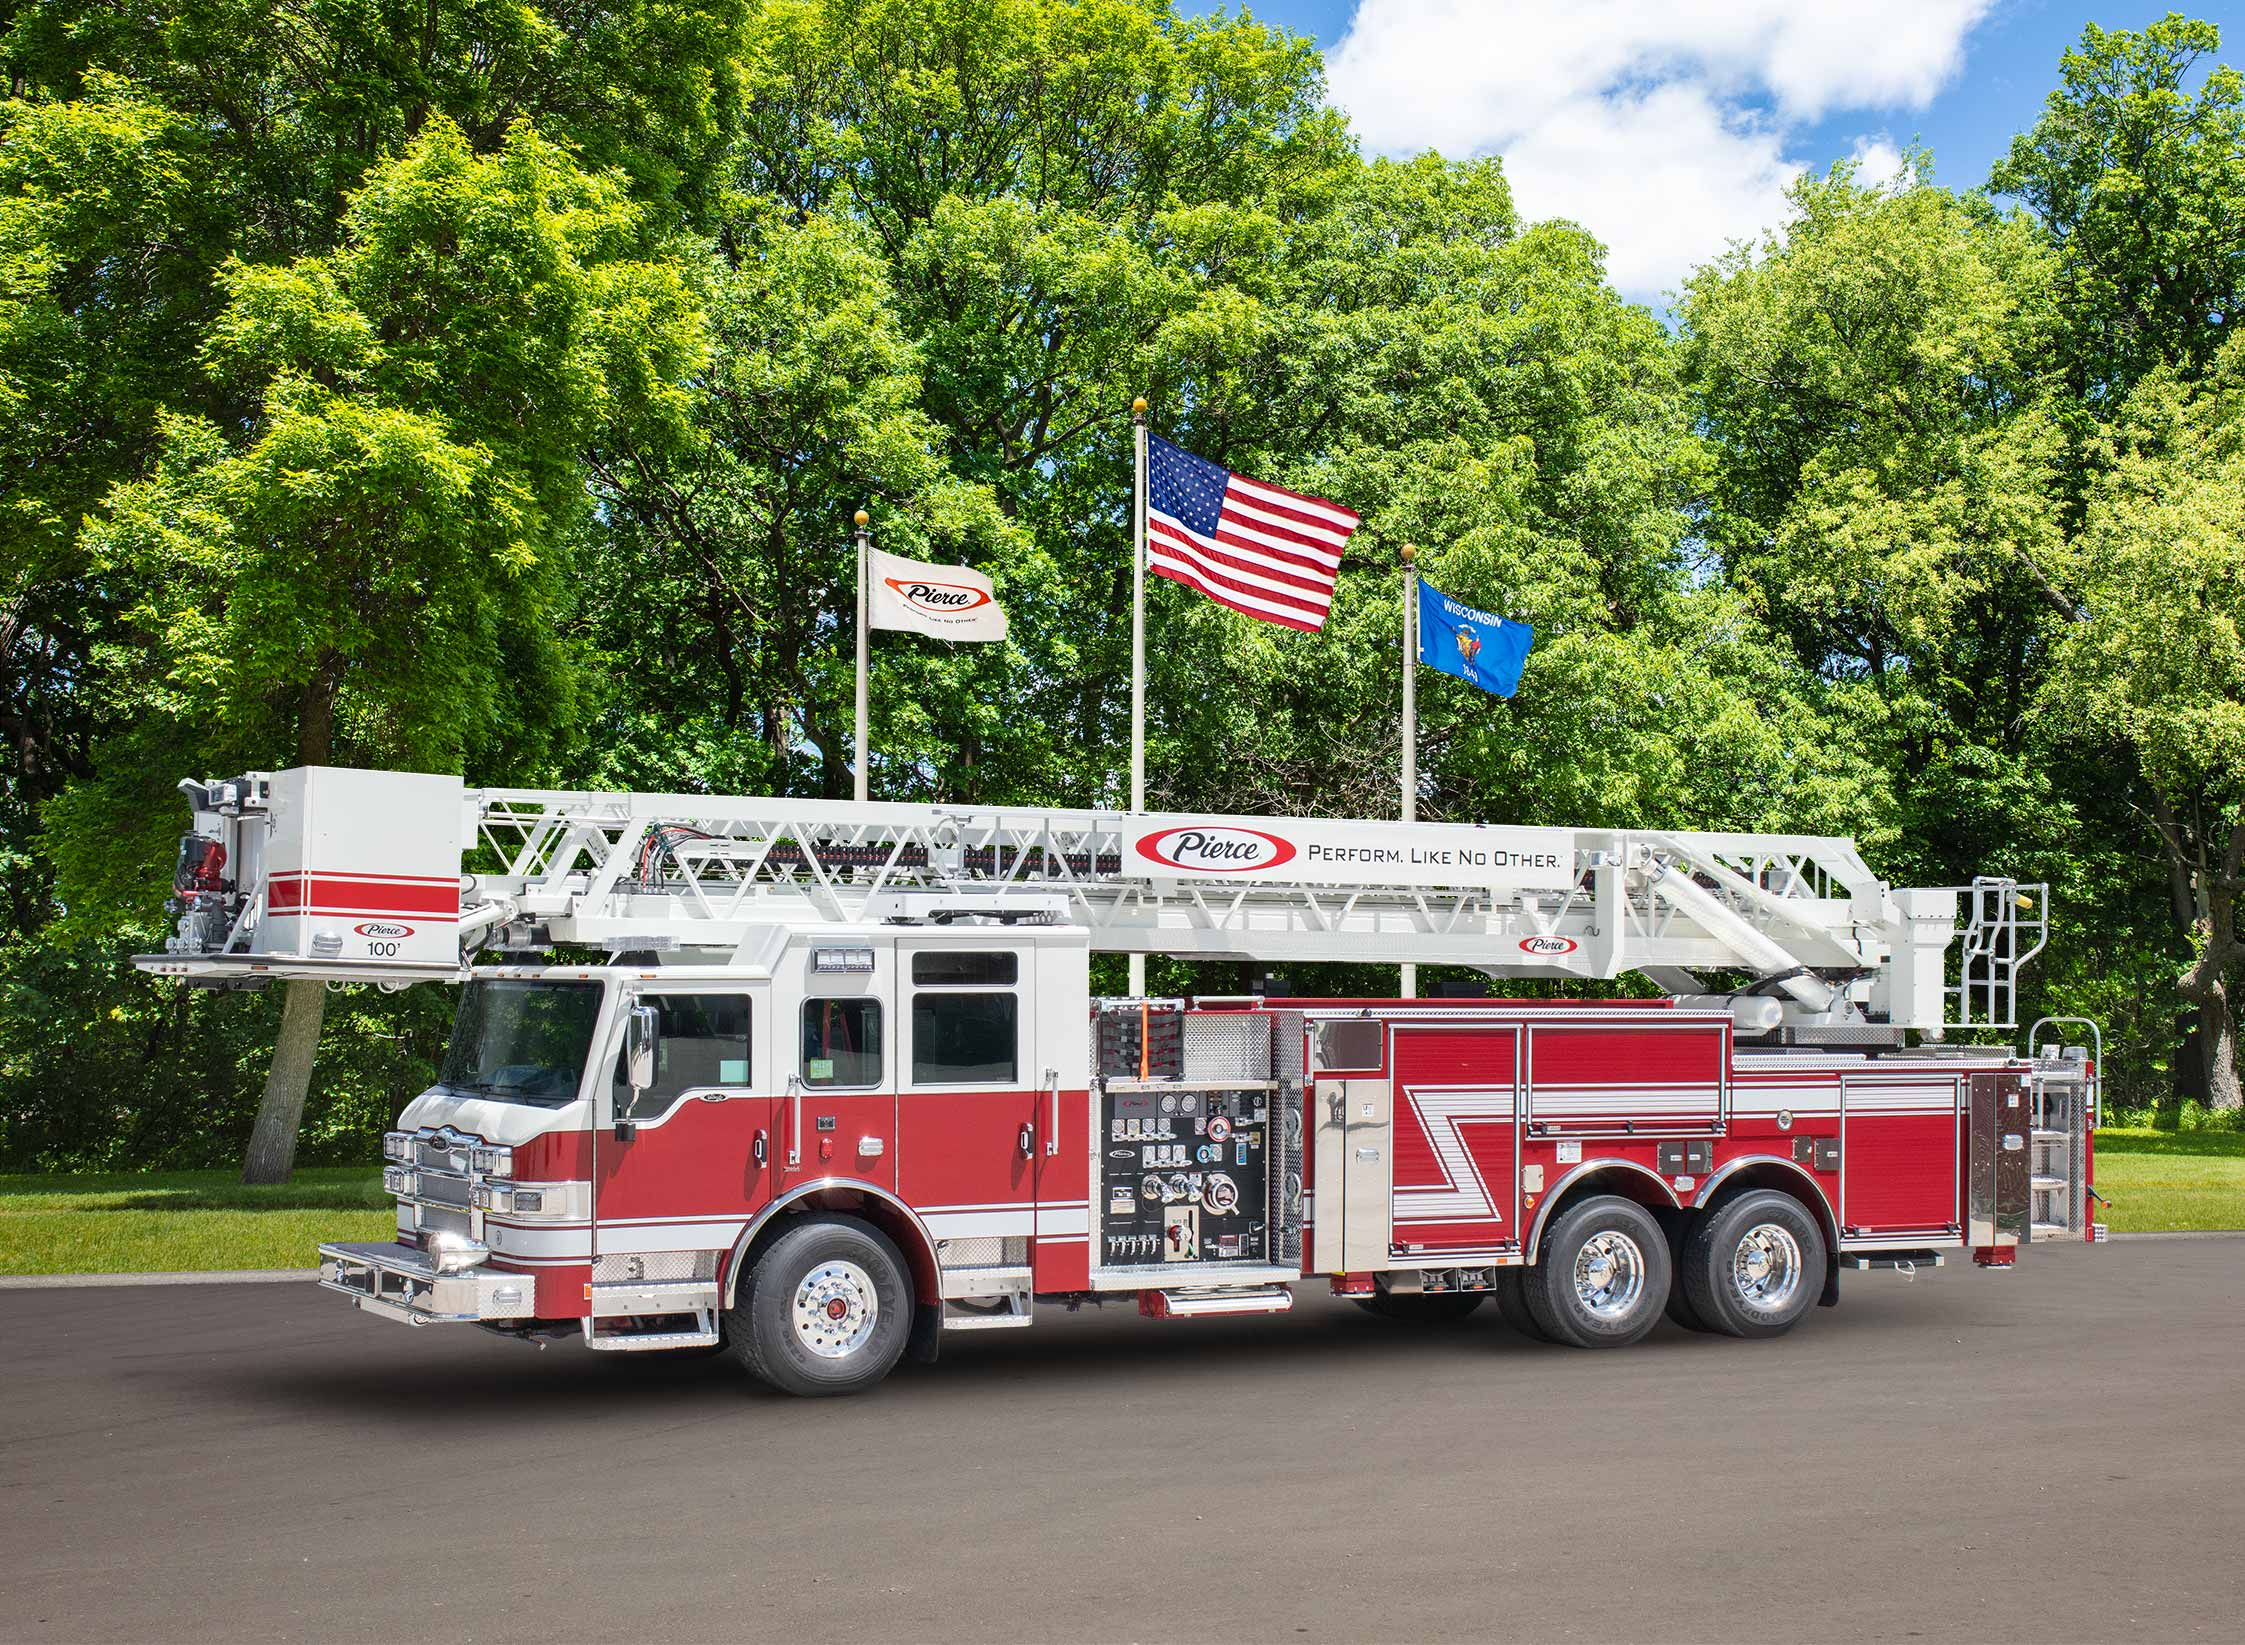 City of Grand Rapids Fire Department - Aerial